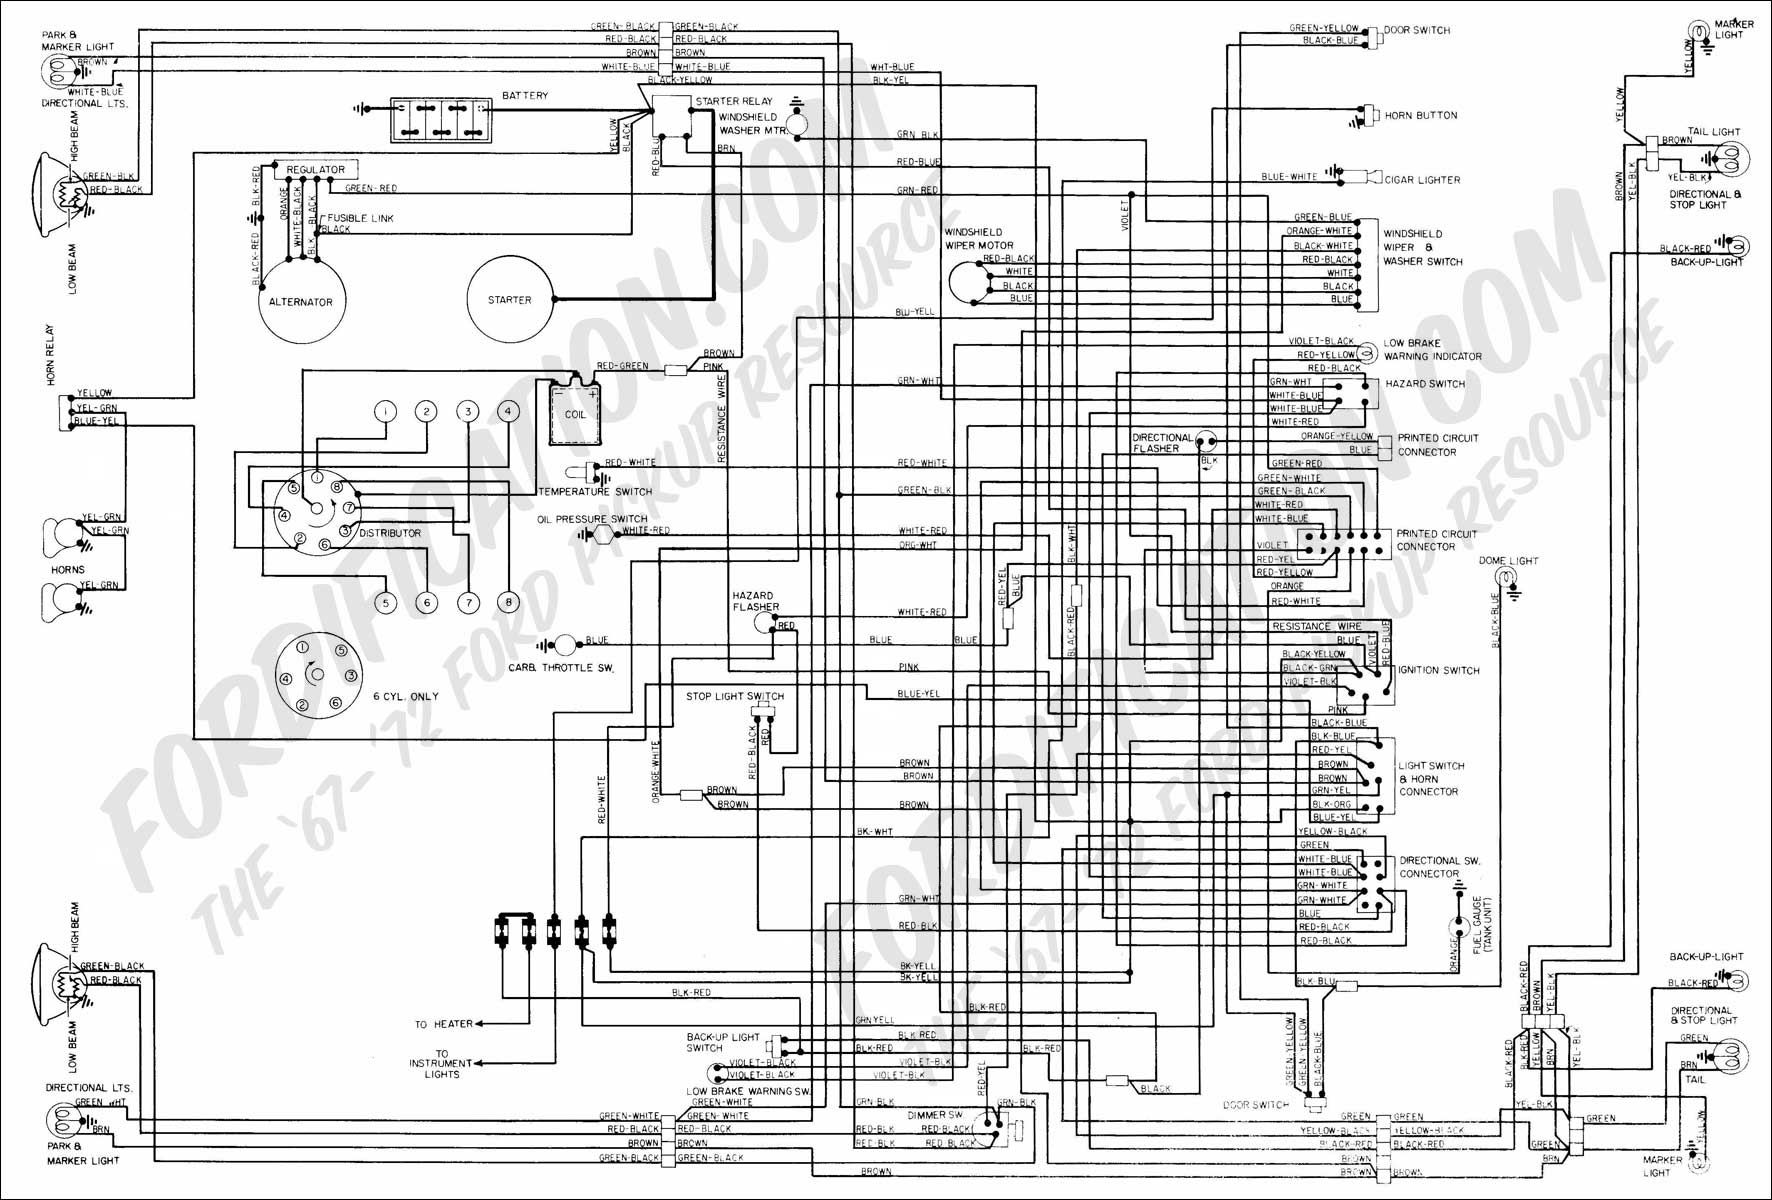 hight resolution of 1972 f250 wiring diagram diagram data schema 1972 ford f250 ignition wiring diagram 1972 f250 wiring diagram